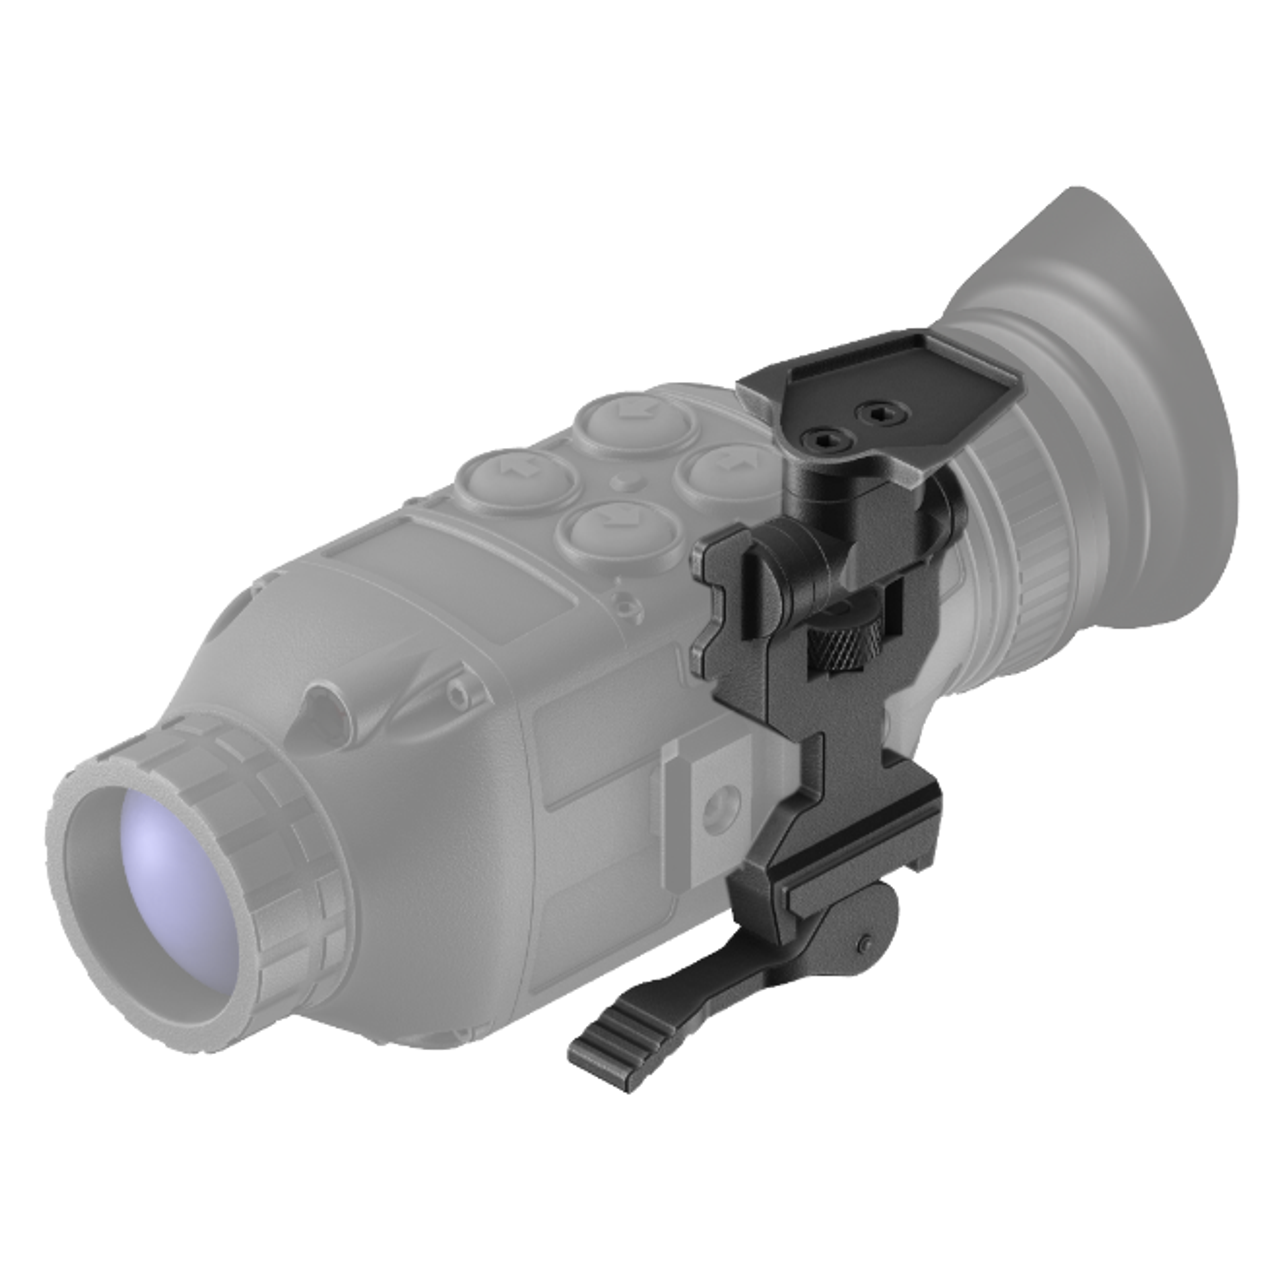 J-Arm Adapter Interface for TI-GEAR-M325/M625 Monoculars